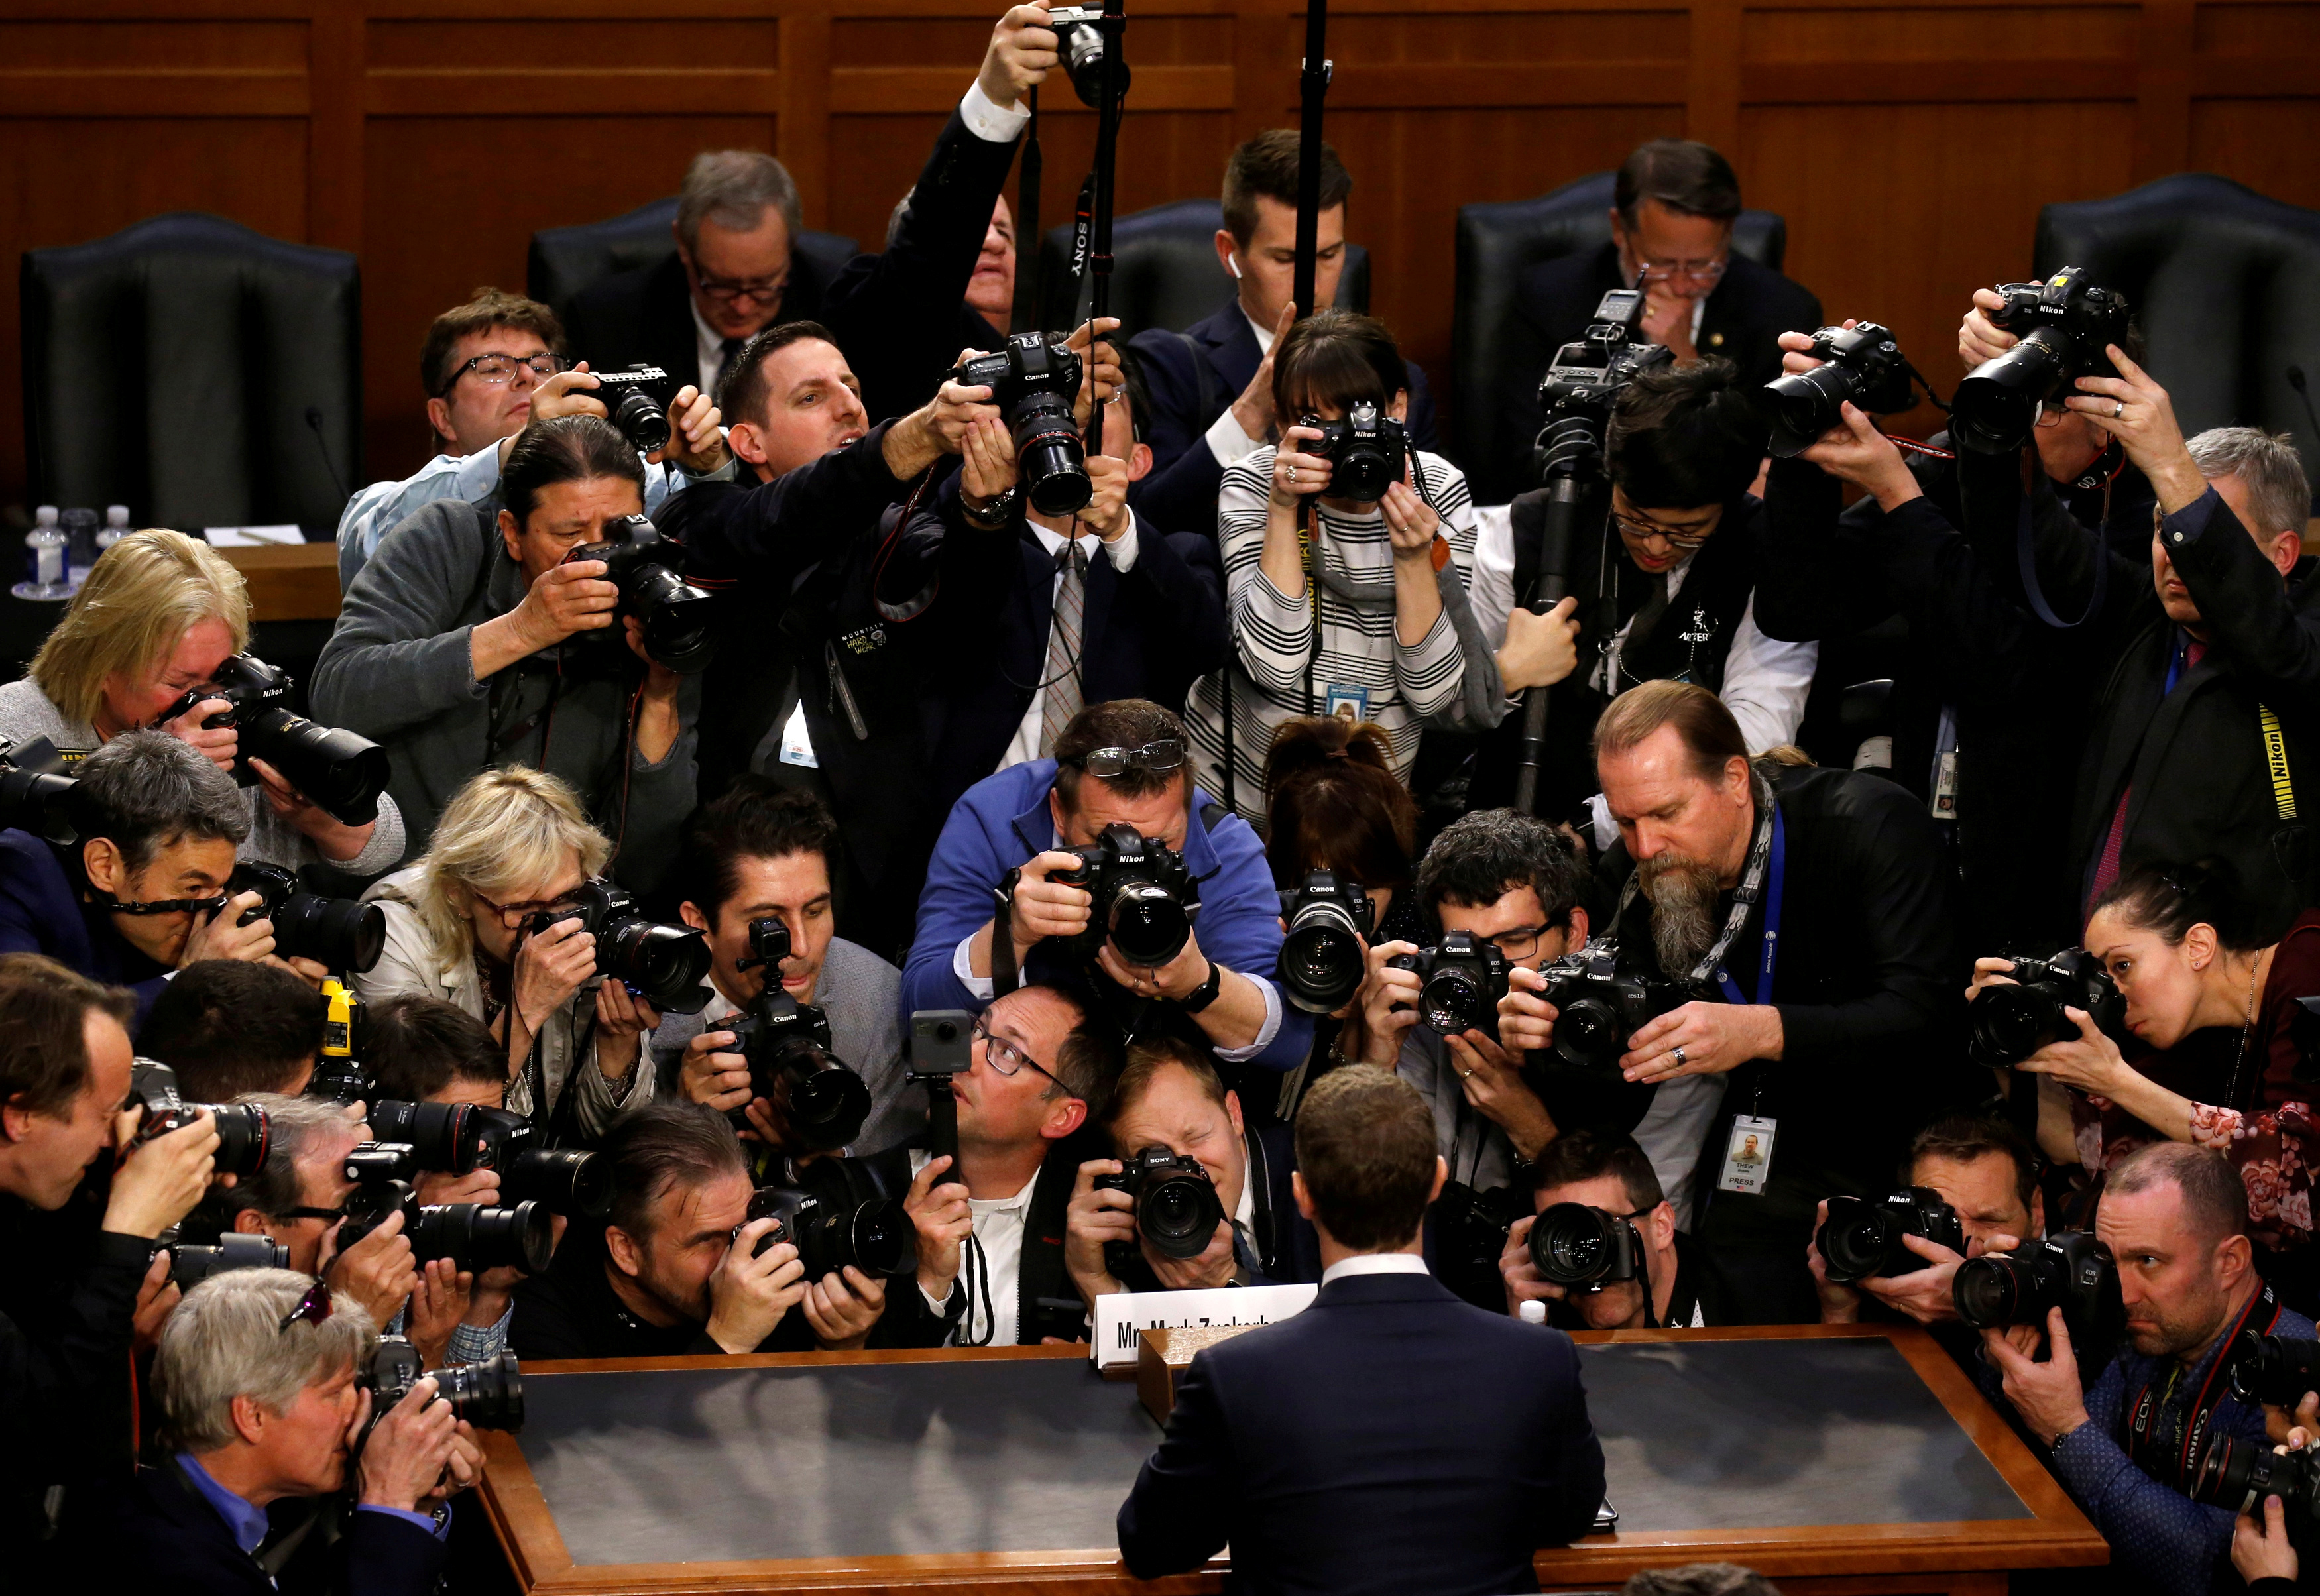 The picture show's the back of Facebook CEO Mark Zuckerberg who is surrounded by photographers.